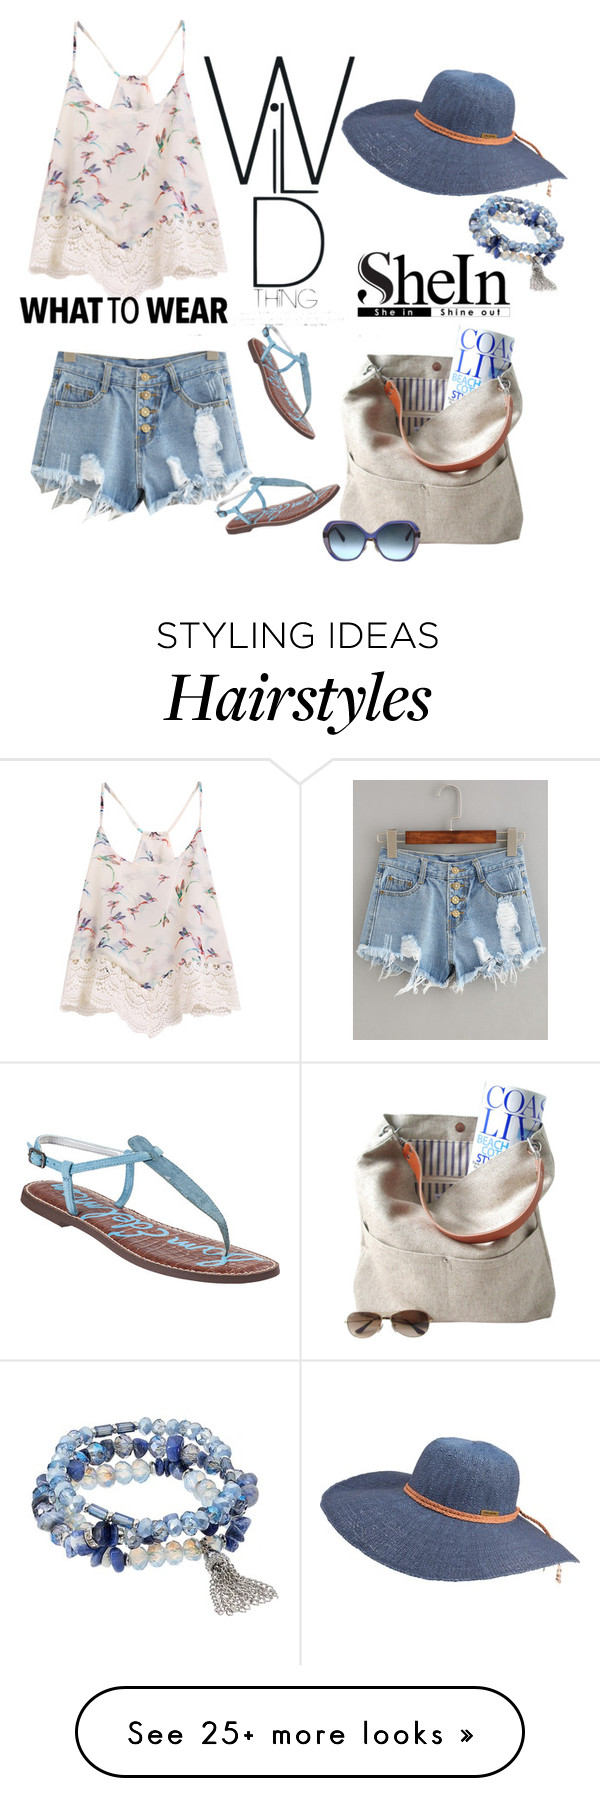 """SheIn button fly distressed denim shorts"" by lorrainekeenan on Polyvore featuring Independent Reign, Oscar de la Renta, Billabong, Sam Edelman and Simply Vera"